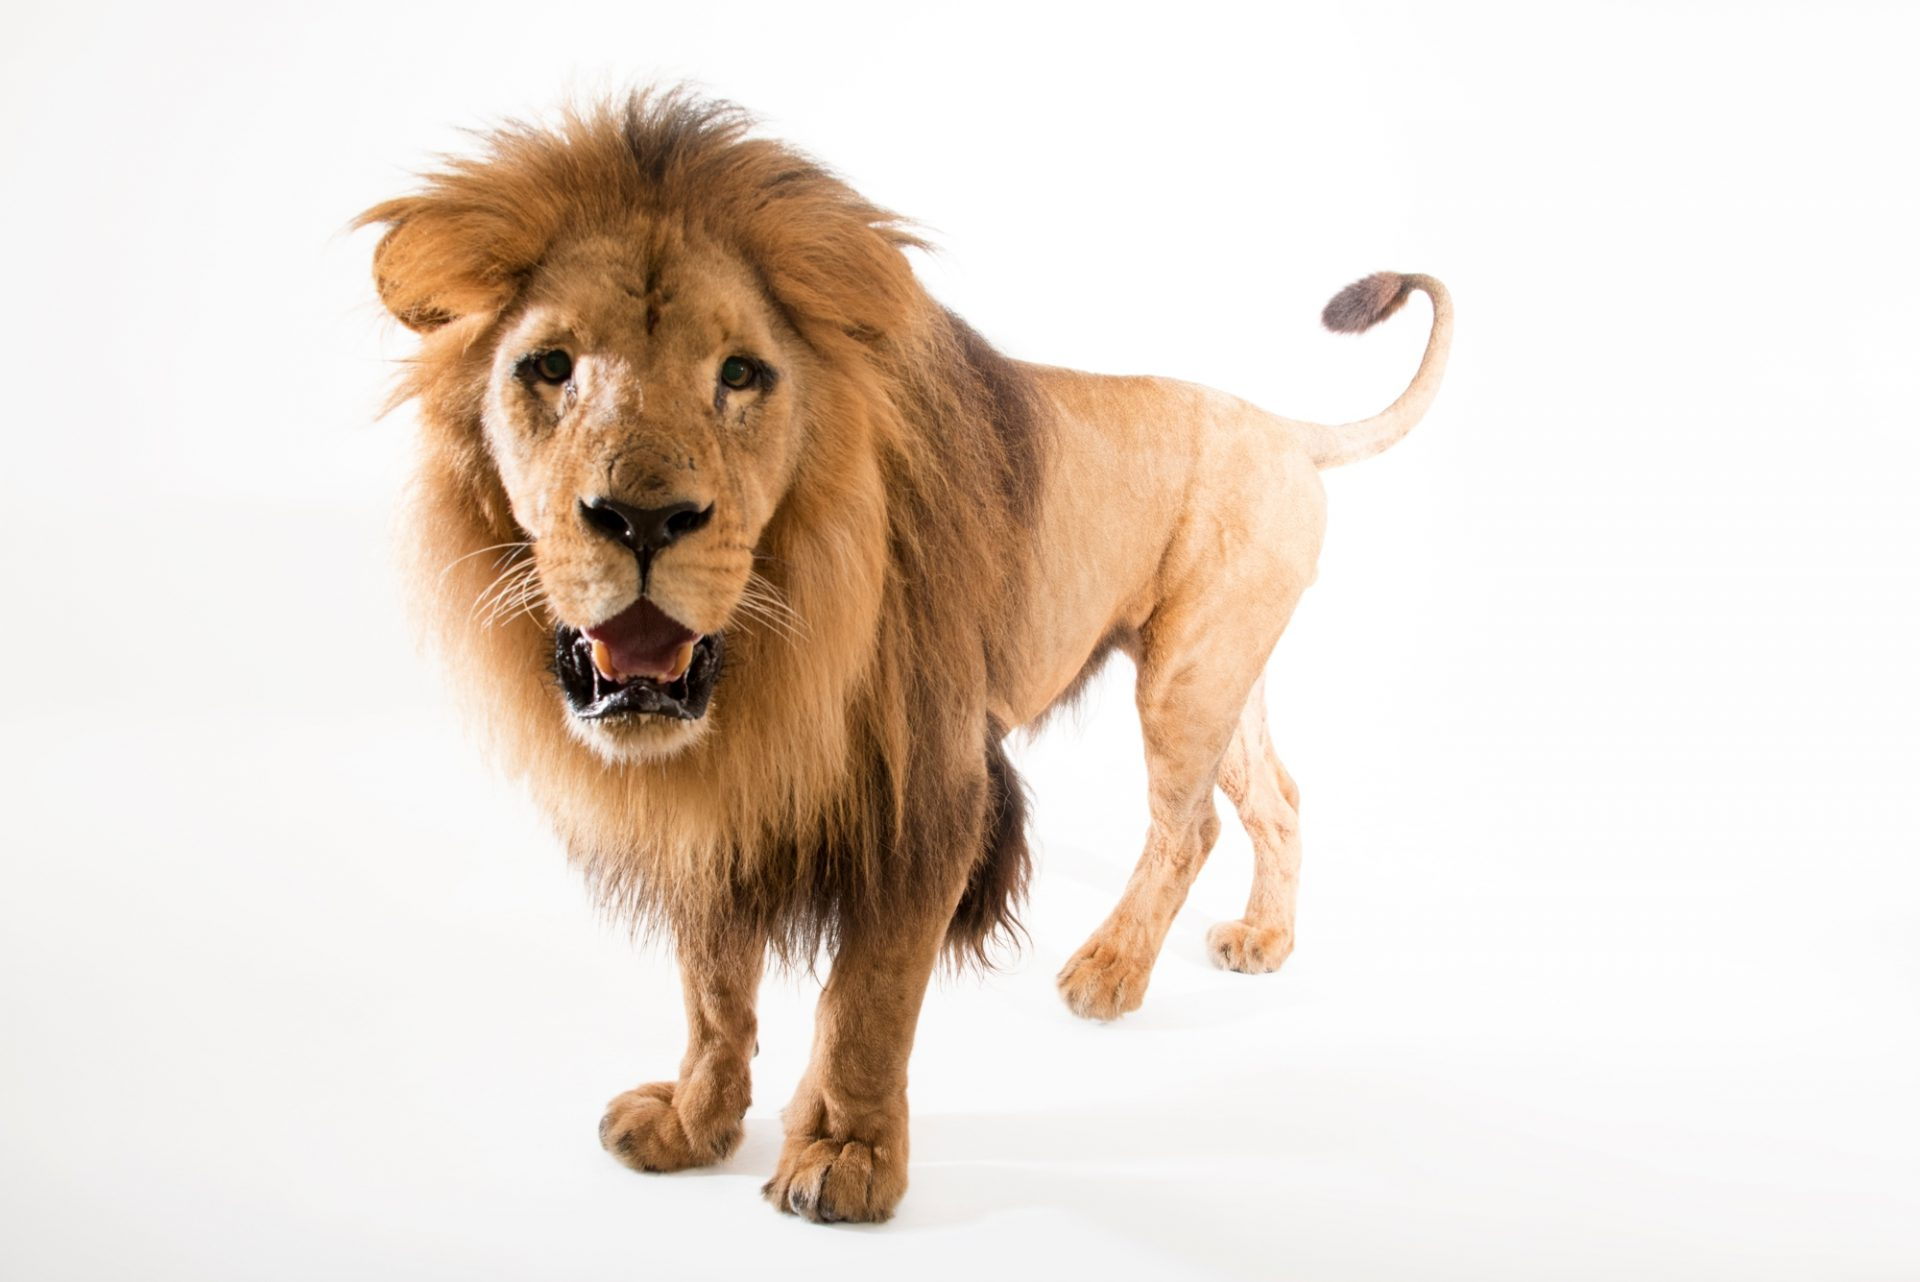 Photo: A Southwest African lion (Panthera leo bleyenberghi) at the Lisbon Zoo. This species is listed as vulnerable by the IUCN.